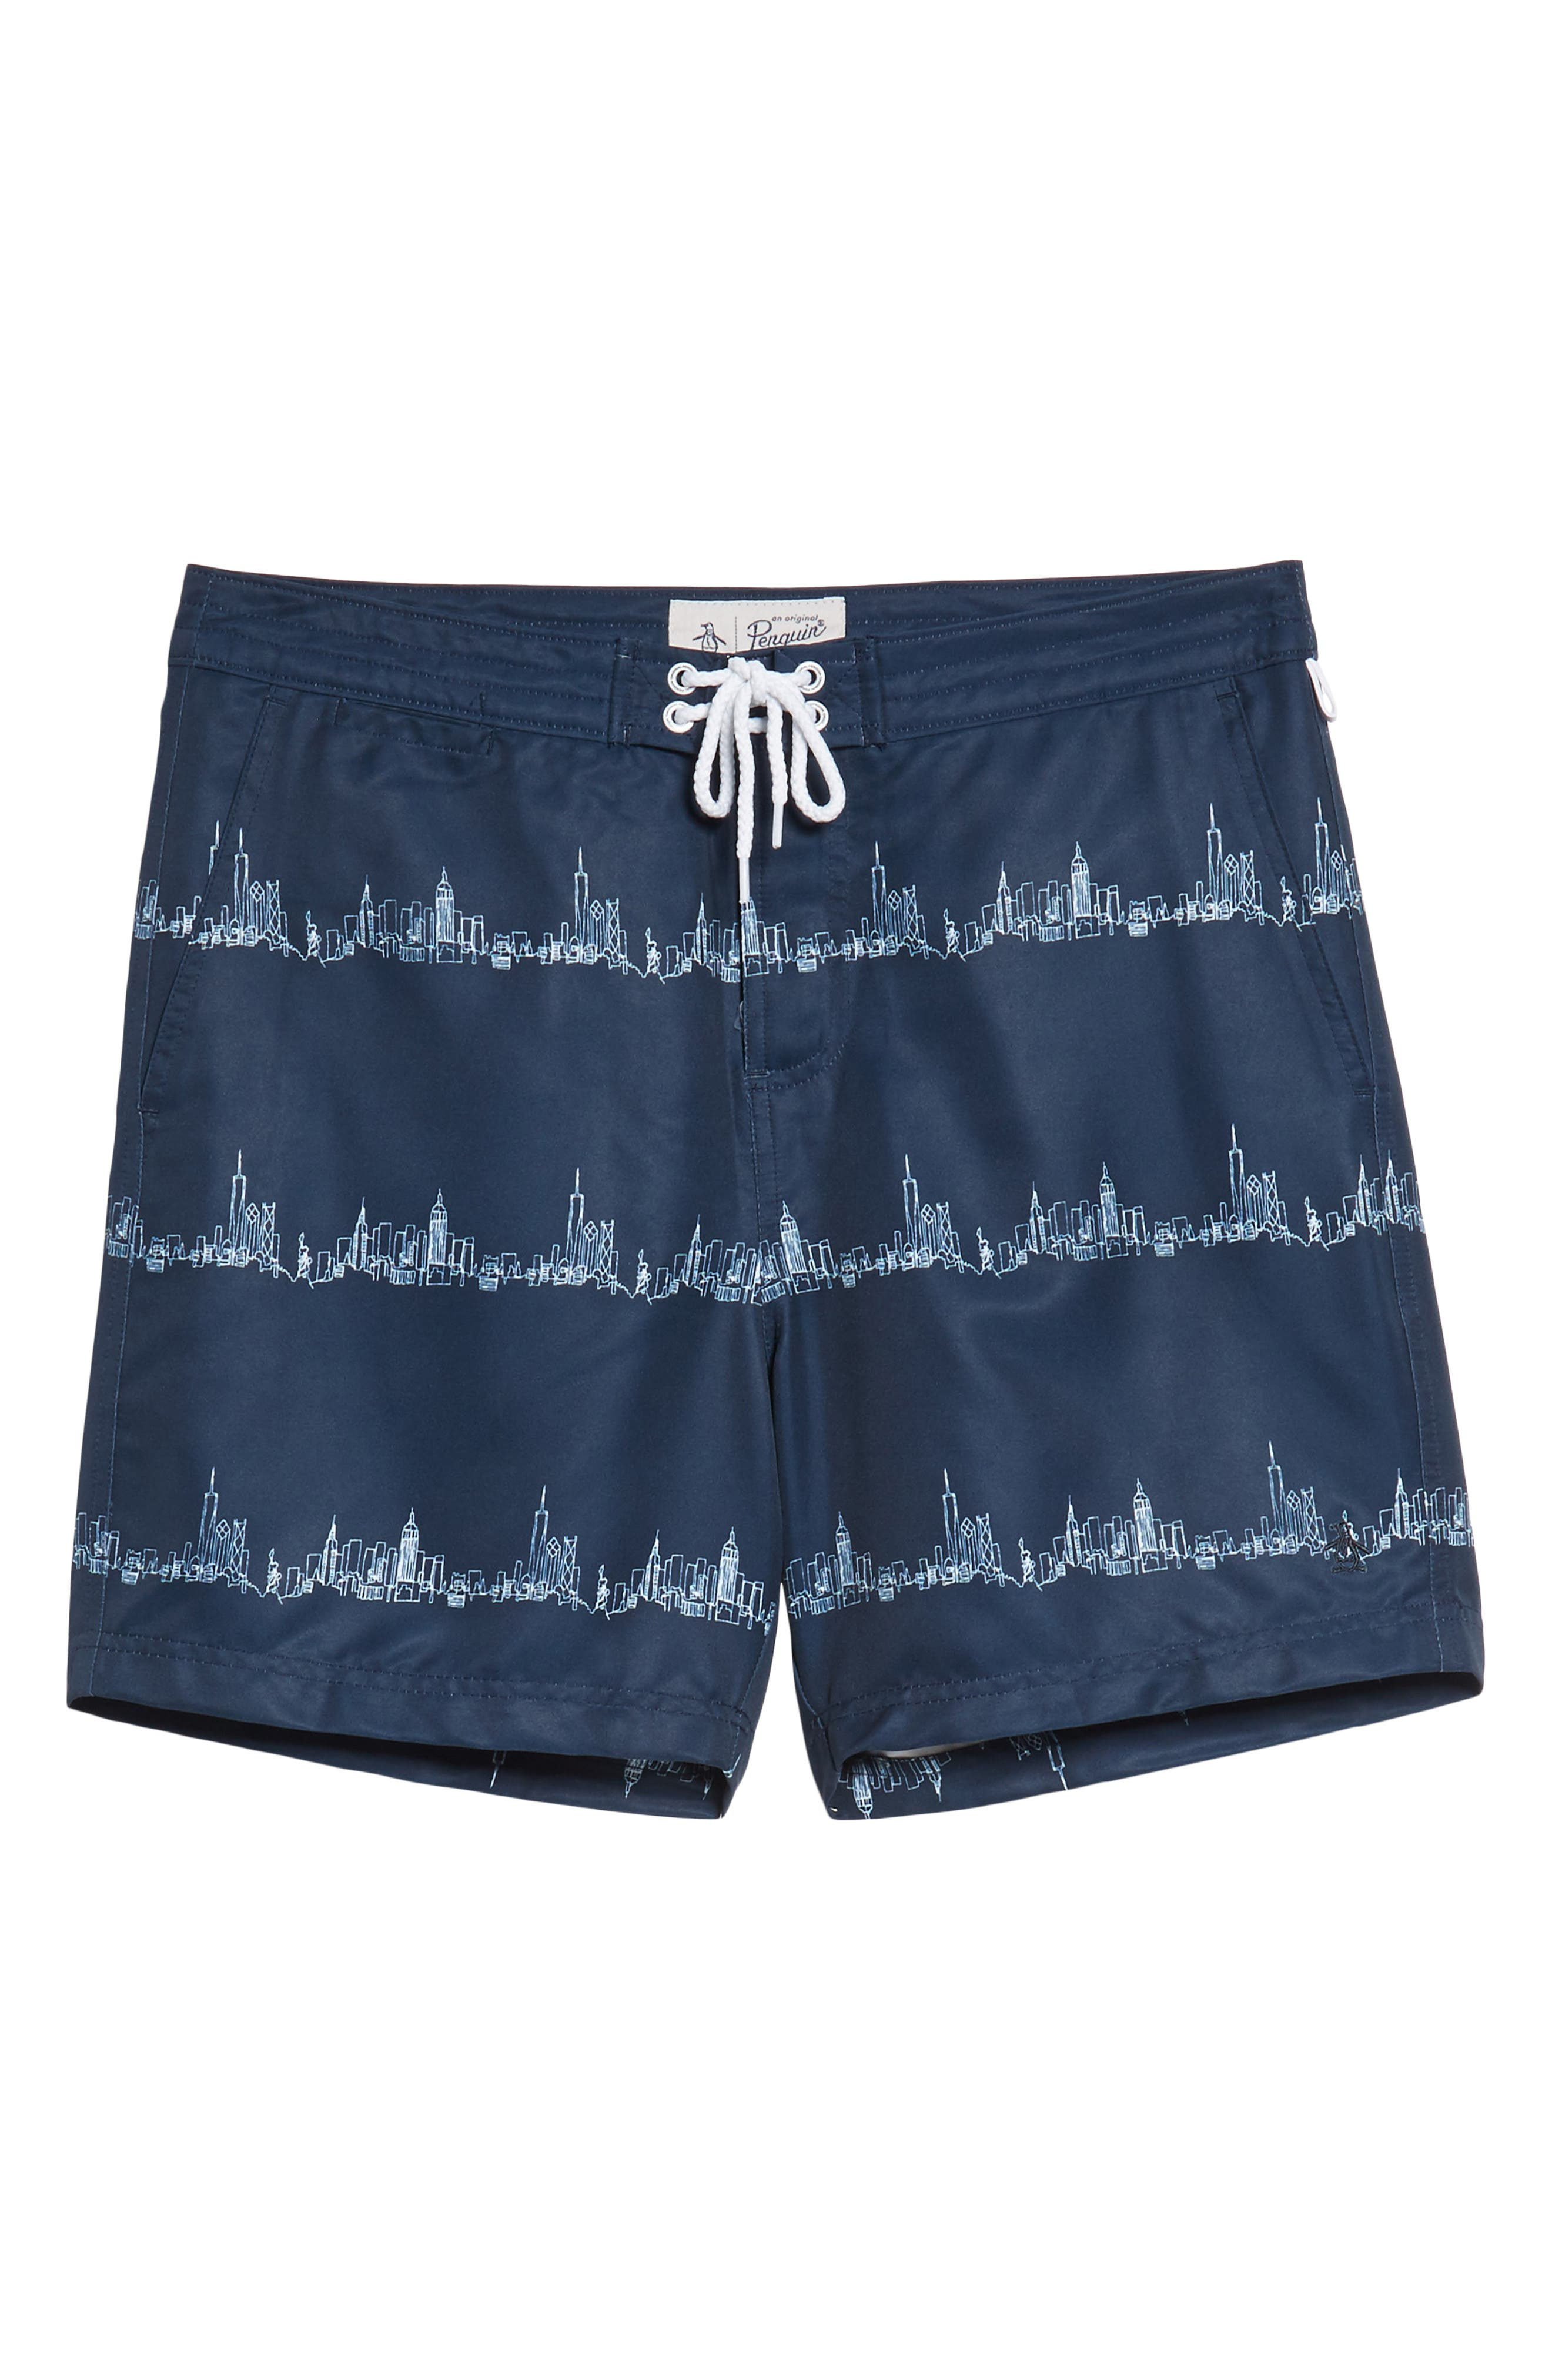 Fixed Stretch Volley Board Shorts,                             Alternate thumbnail 6, color,                             413